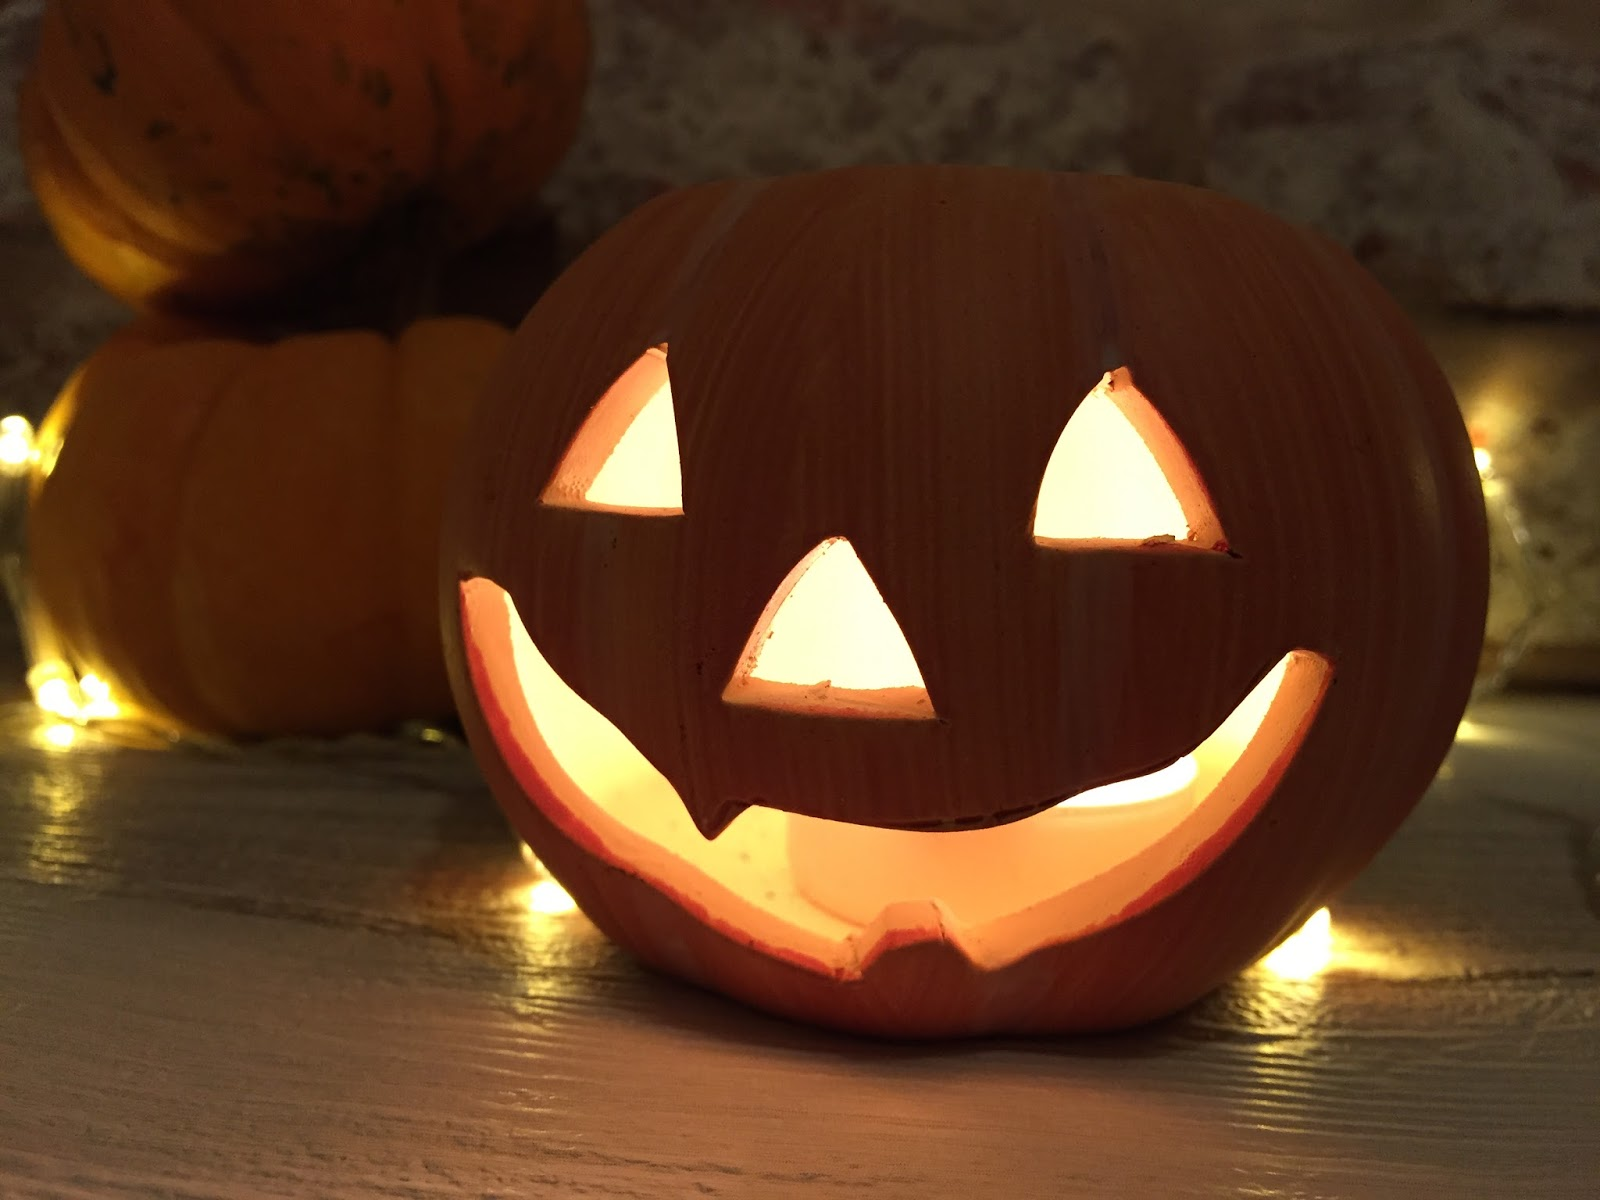 I Know Halloween Isnt Until Tomorrow But As This Is The Last Day In October Ill Be Blogging Today Seemed Good A Any To Post Something